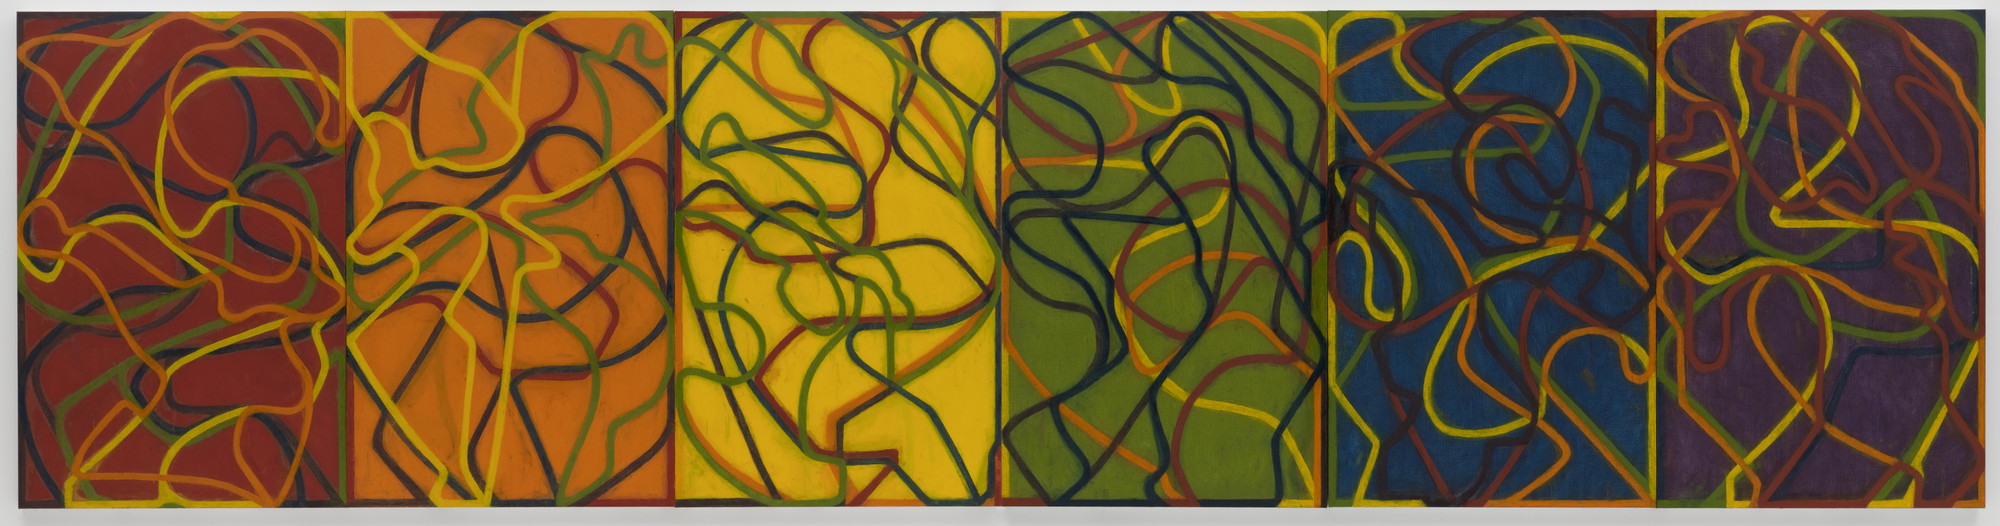 Brice Marden. The Propitious Garden of Plane Image, Third Version. 2000-2006